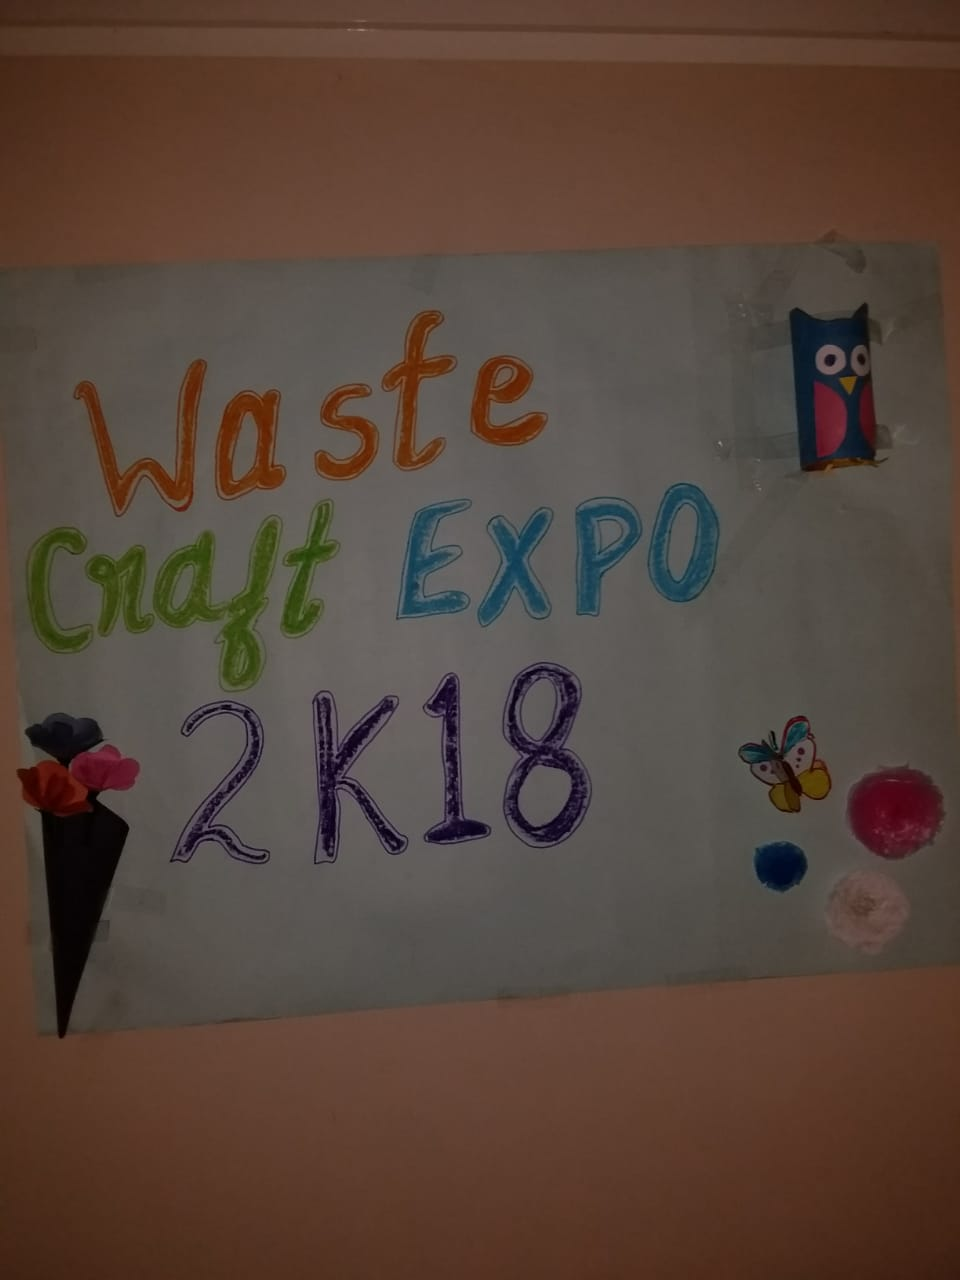 WASTE CRAFT EXPO 2018